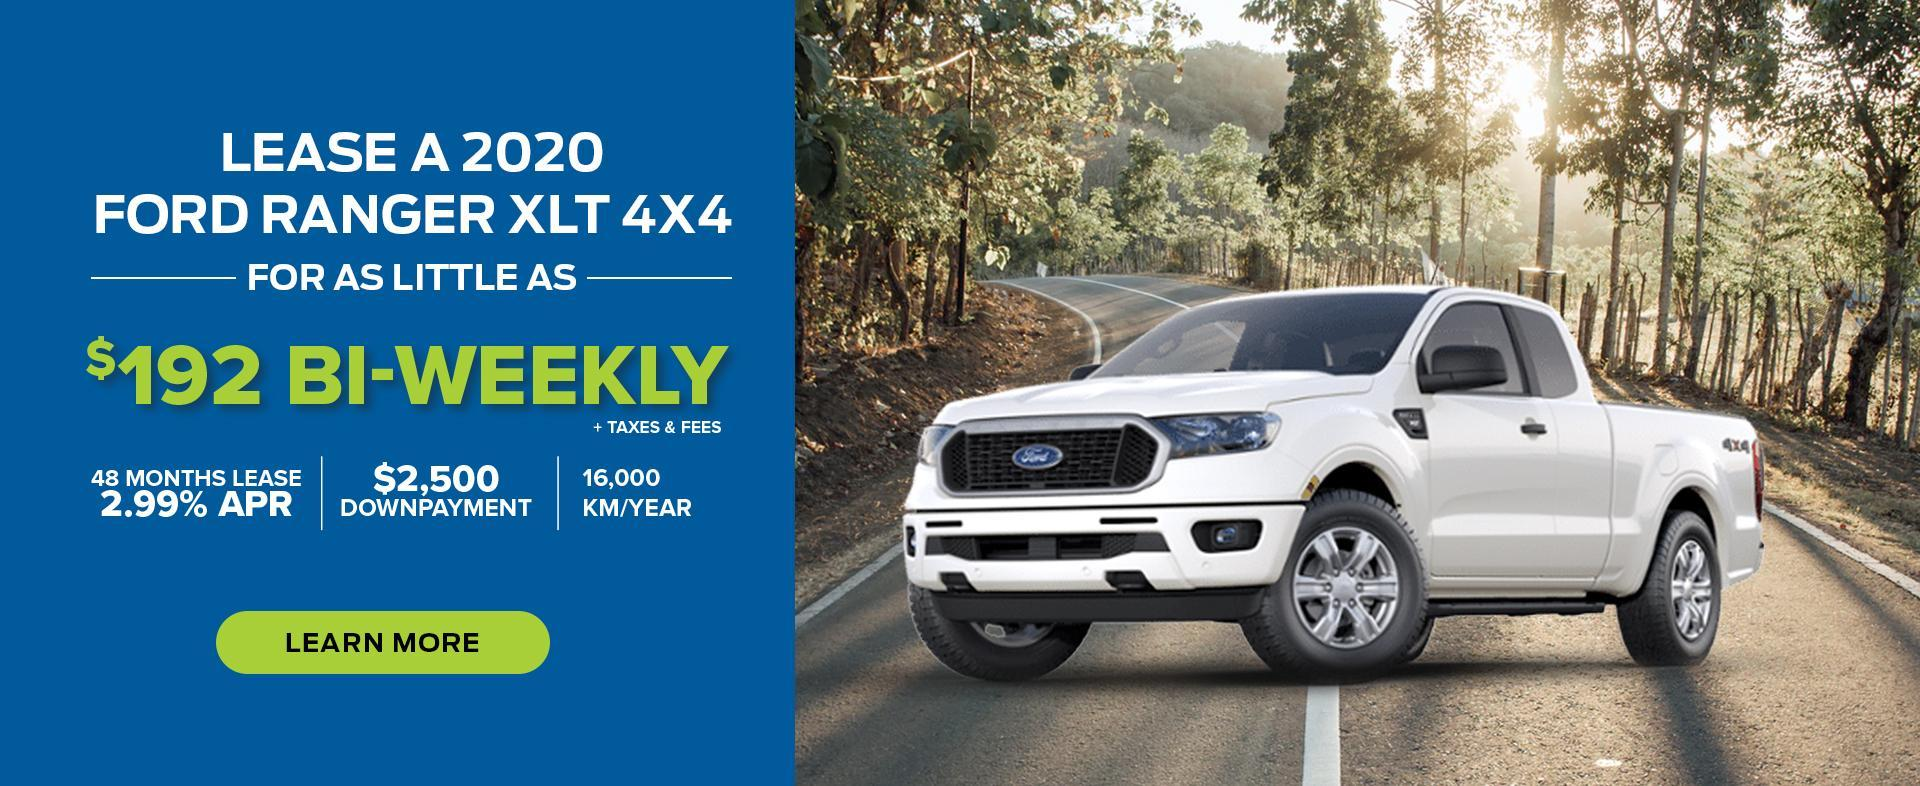 Lease a 2020 Ford Ranger XLT 4x4 for $192 bi-weekly